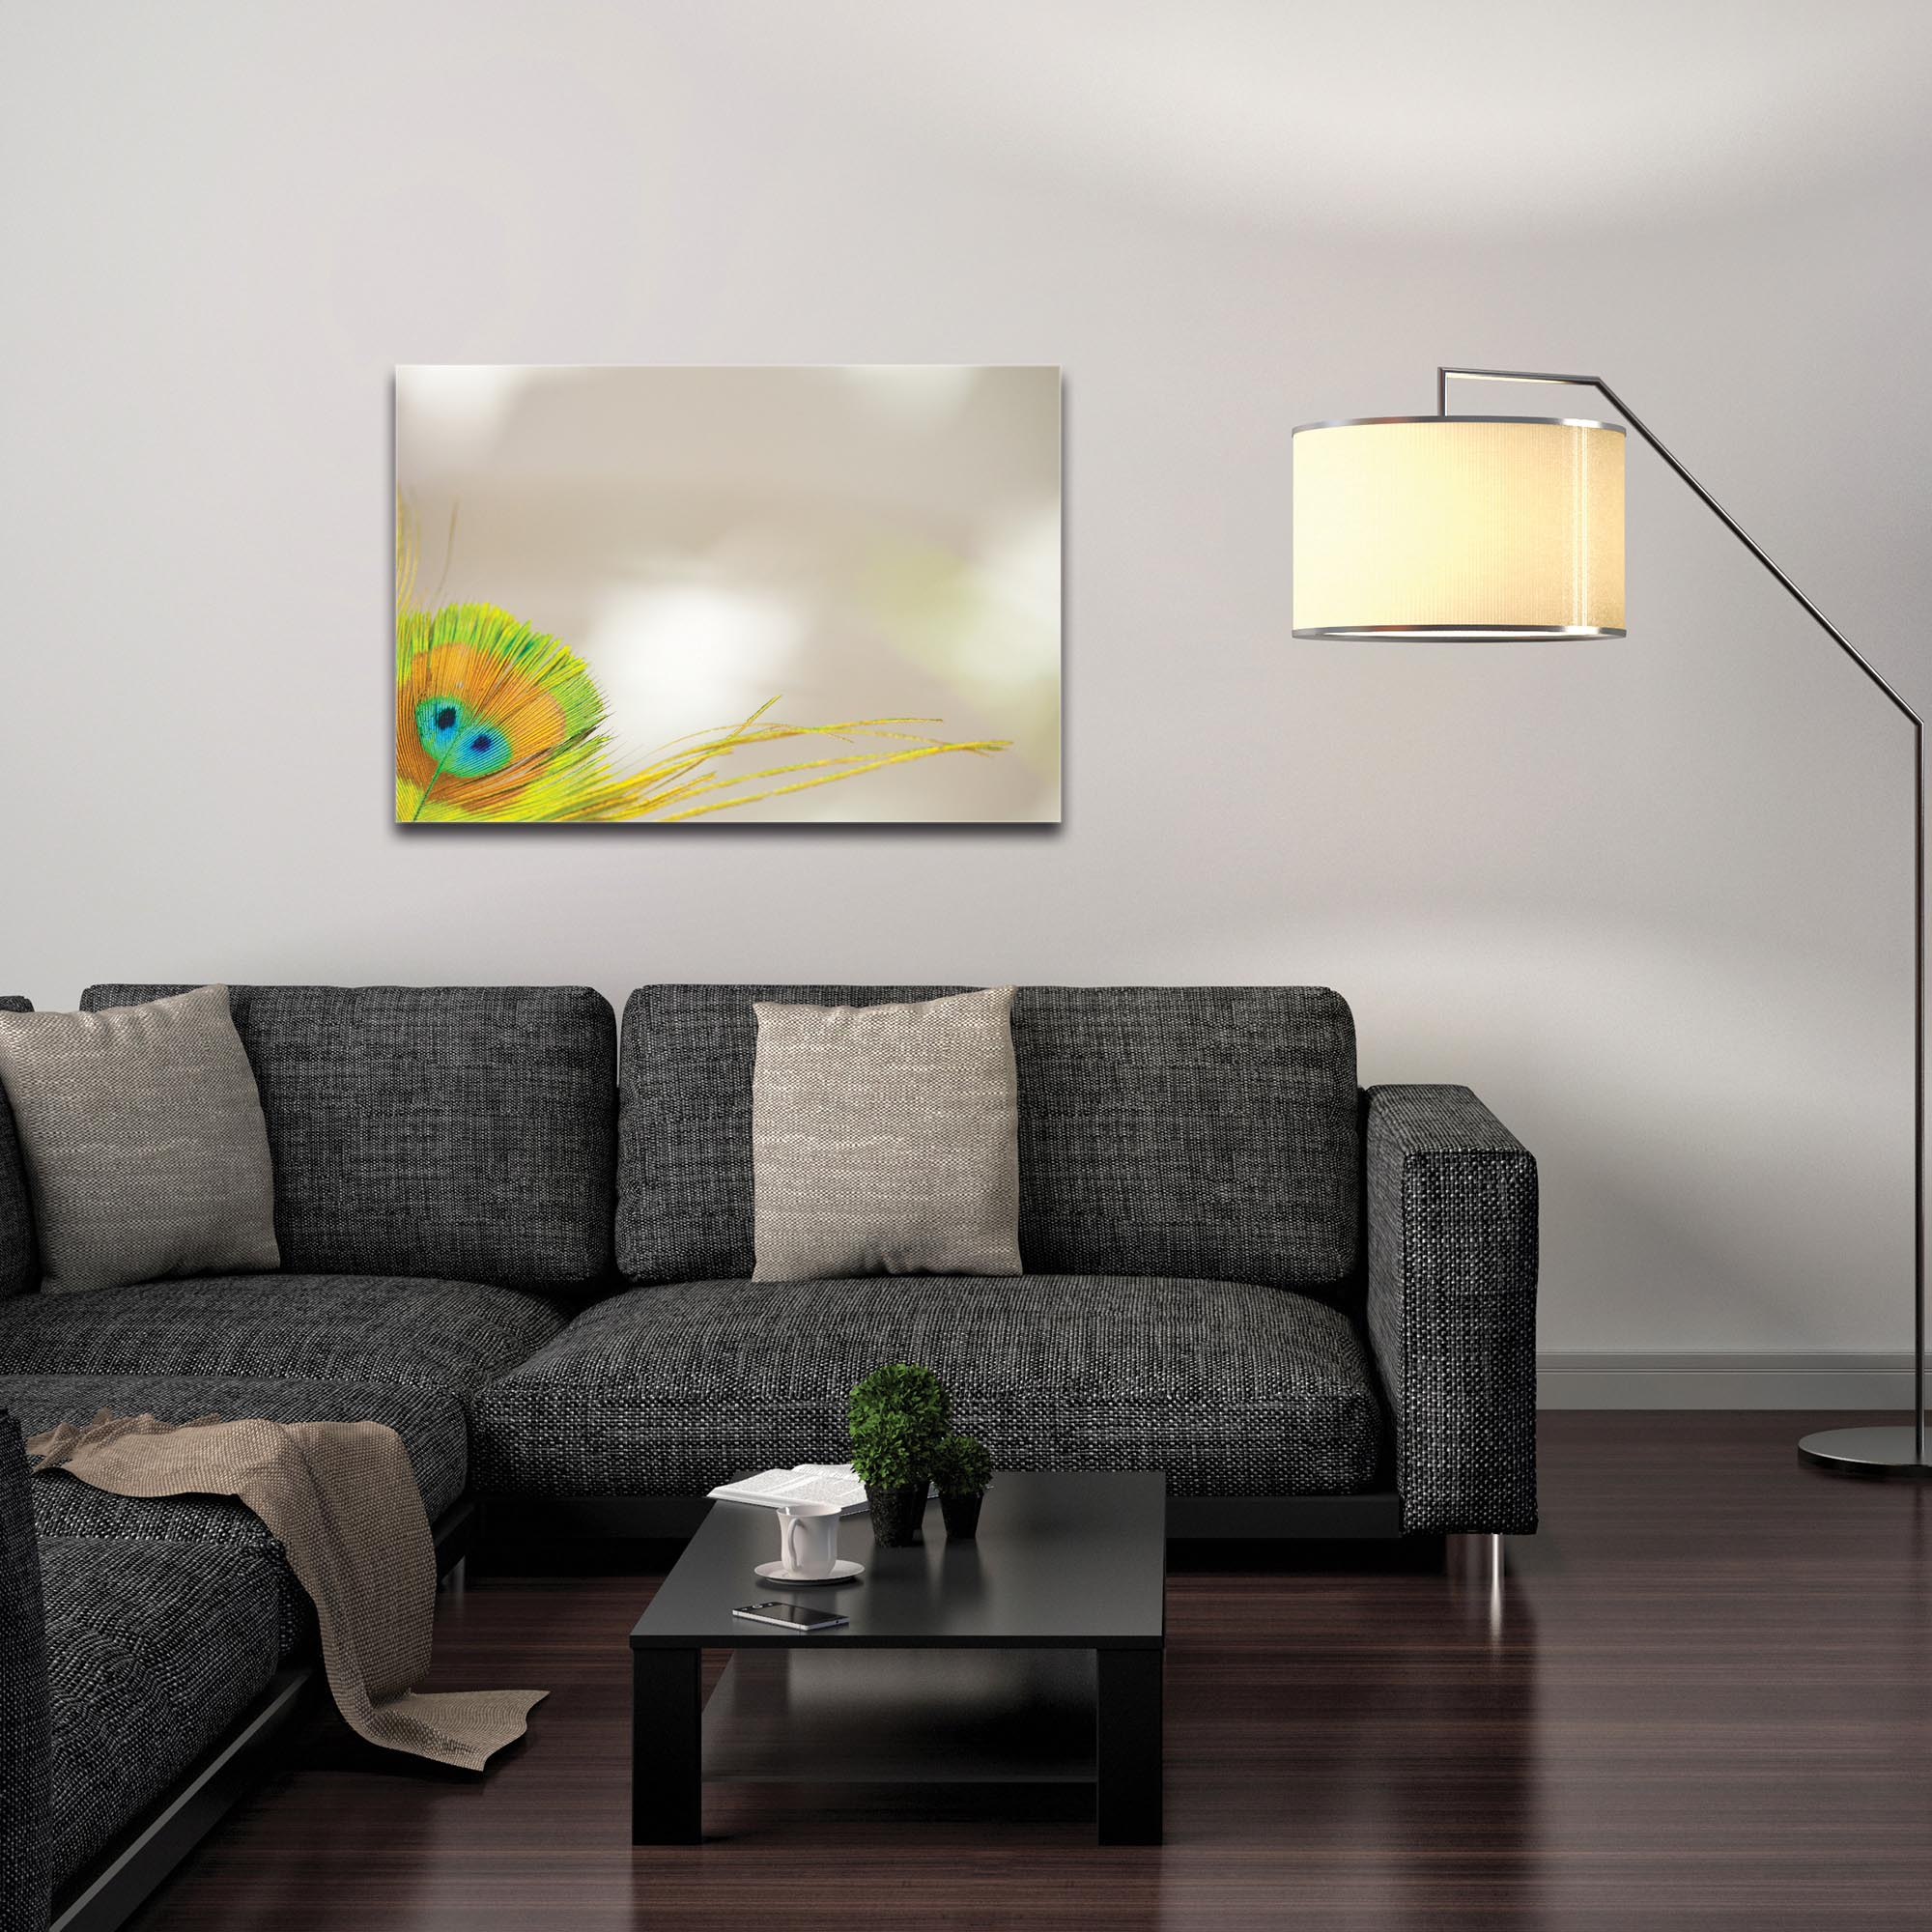 Contemporary Wall Art 'Peacock Corner' - Wildlife Decor on Metal or Plexiglass - Image 3